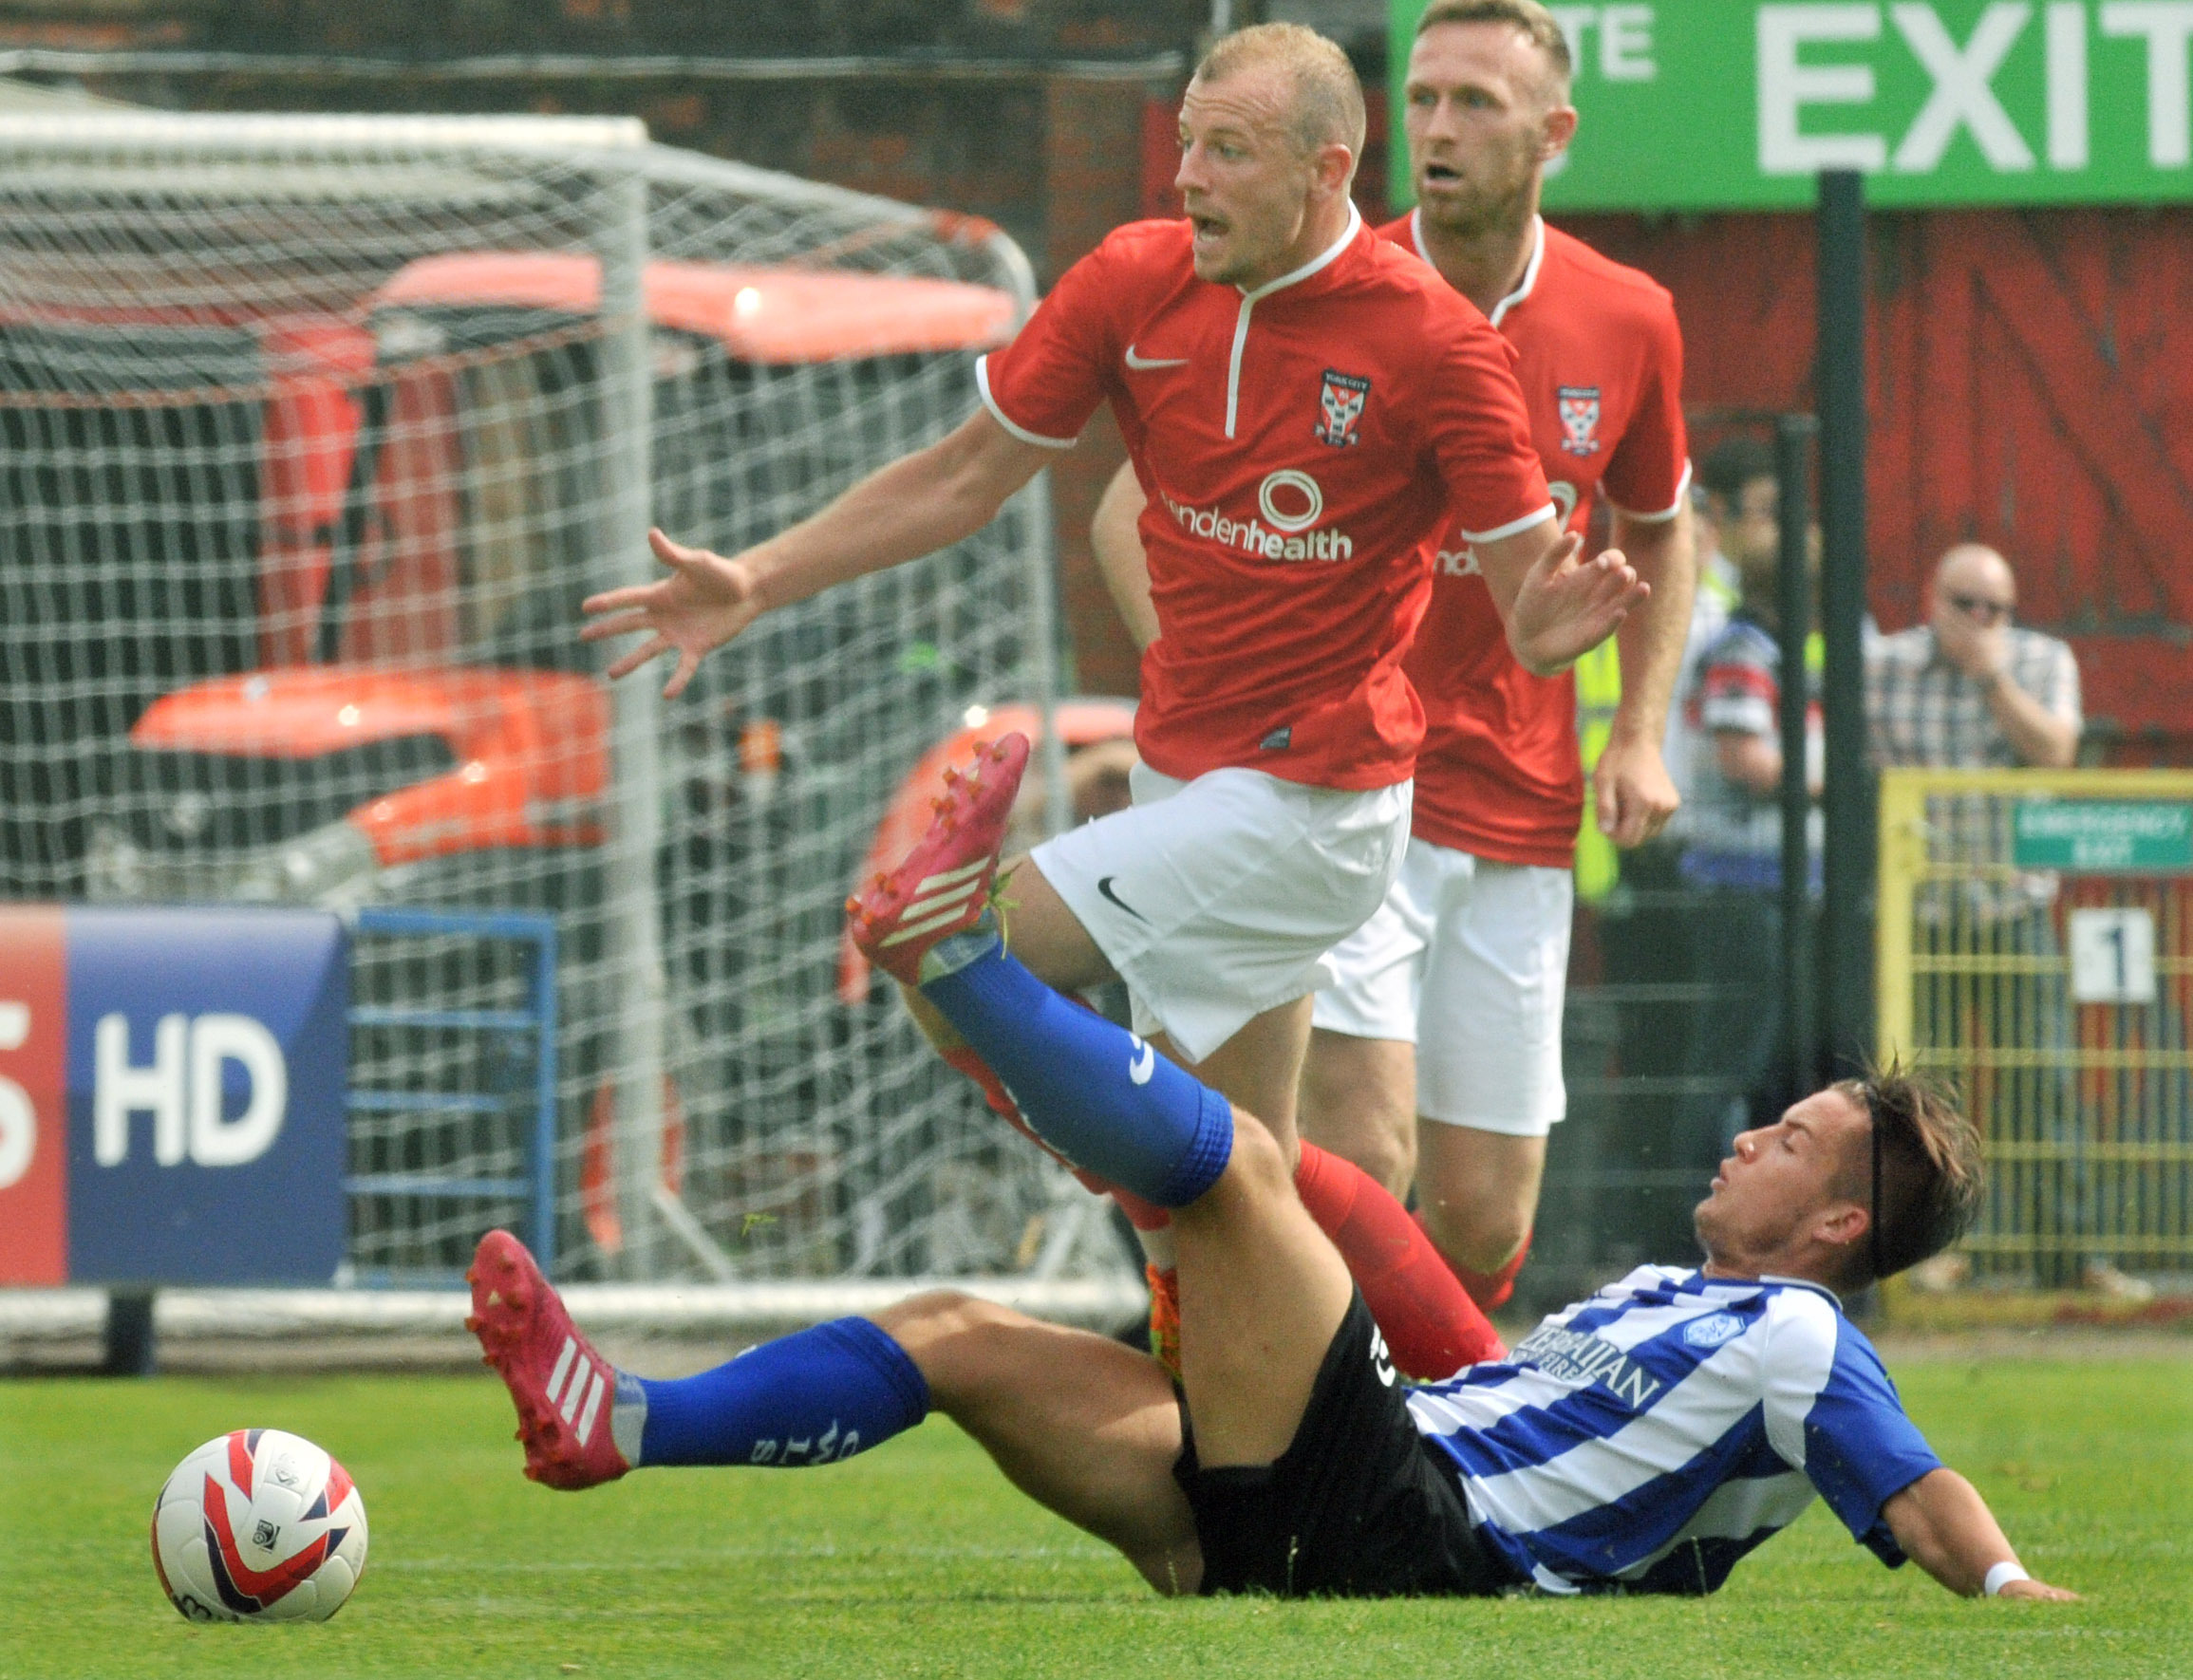 York City's Keith Lowe optimistic for future